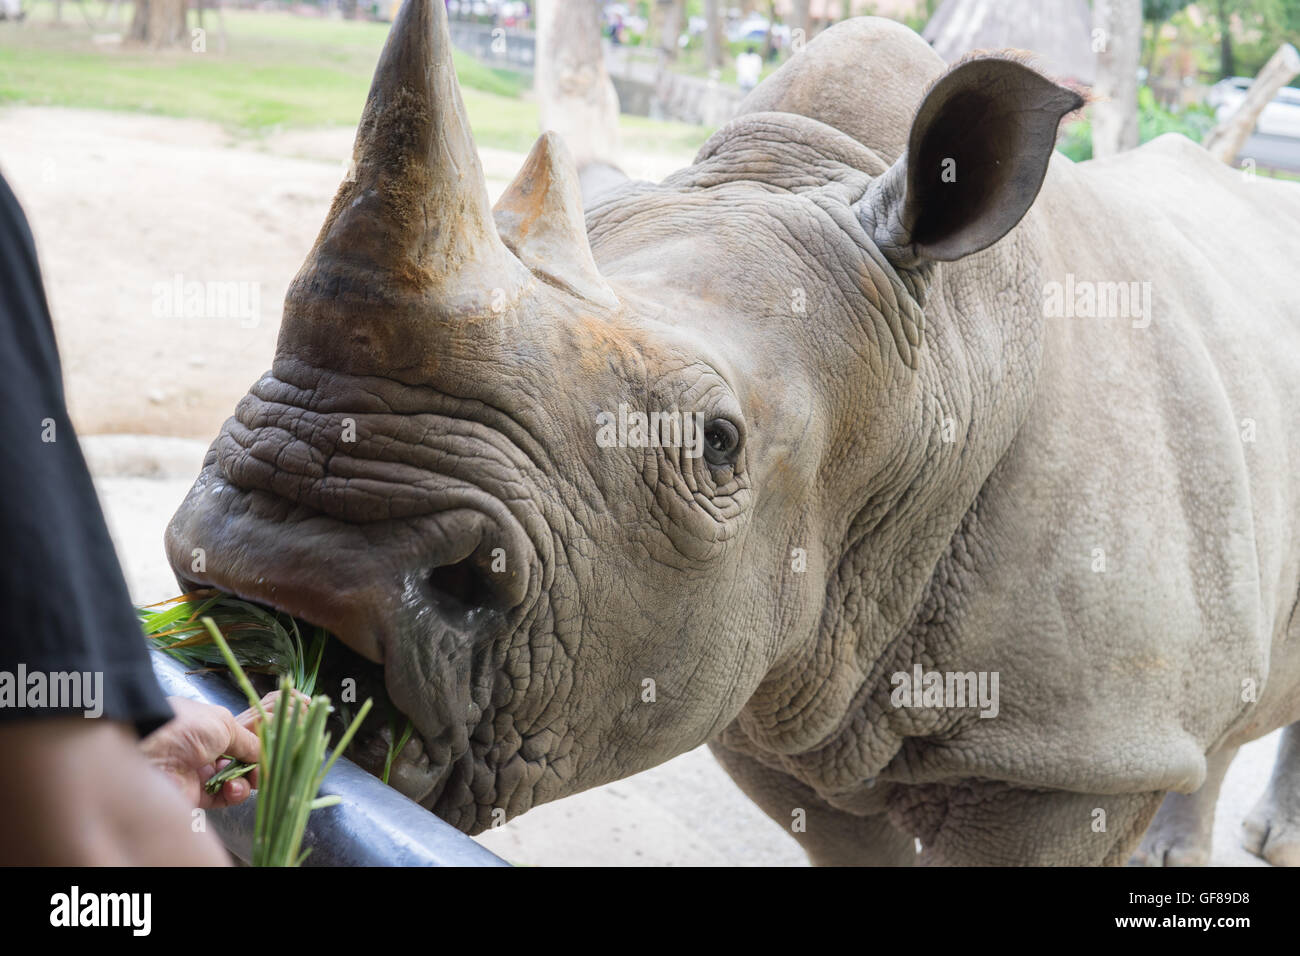 A close up of a female rhino / rhinoceros and her calf. Showing off her beautiful horn. Protecting her calf. South - Stock Image